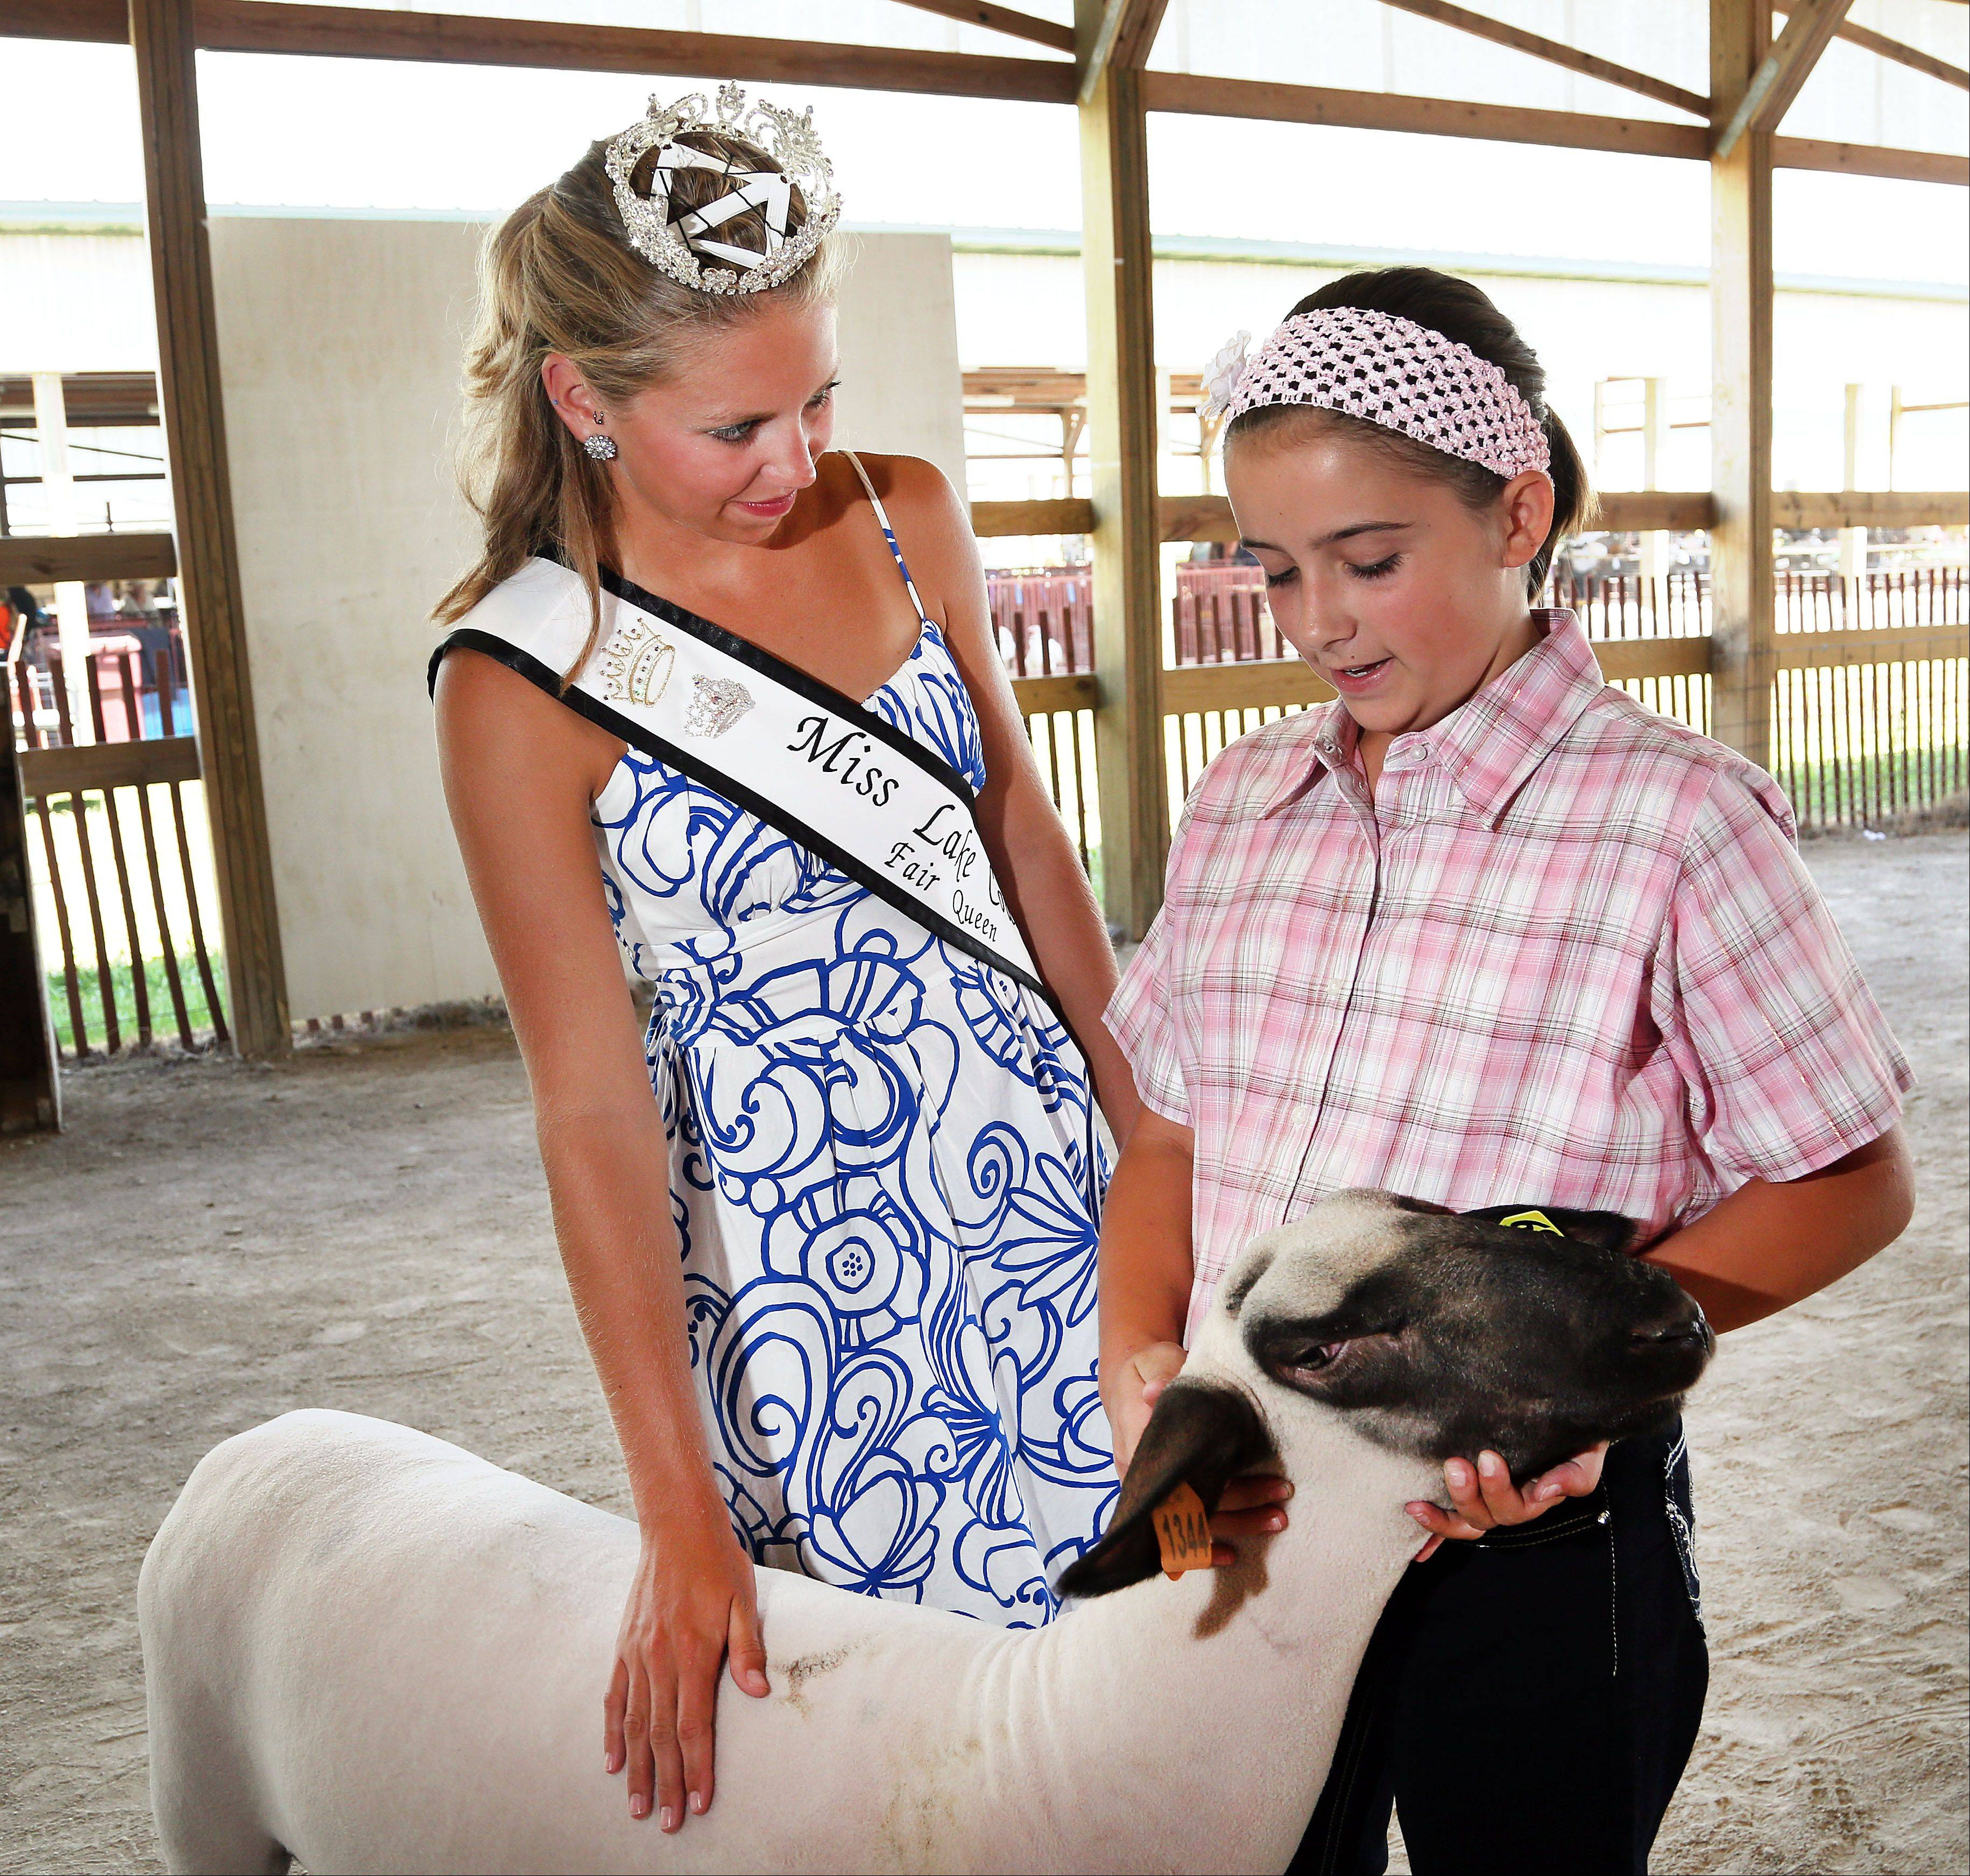 Newly-crowned Miss Lake County Fair Queen 21-year-old Meghan Opolka of Antioch talks with 10-year-old Kendra Dilg of Pleasant Prairie, Wisconsin after her lamb won grand champion in the open competition at the Lake County Fair in Grayslake Thursday.